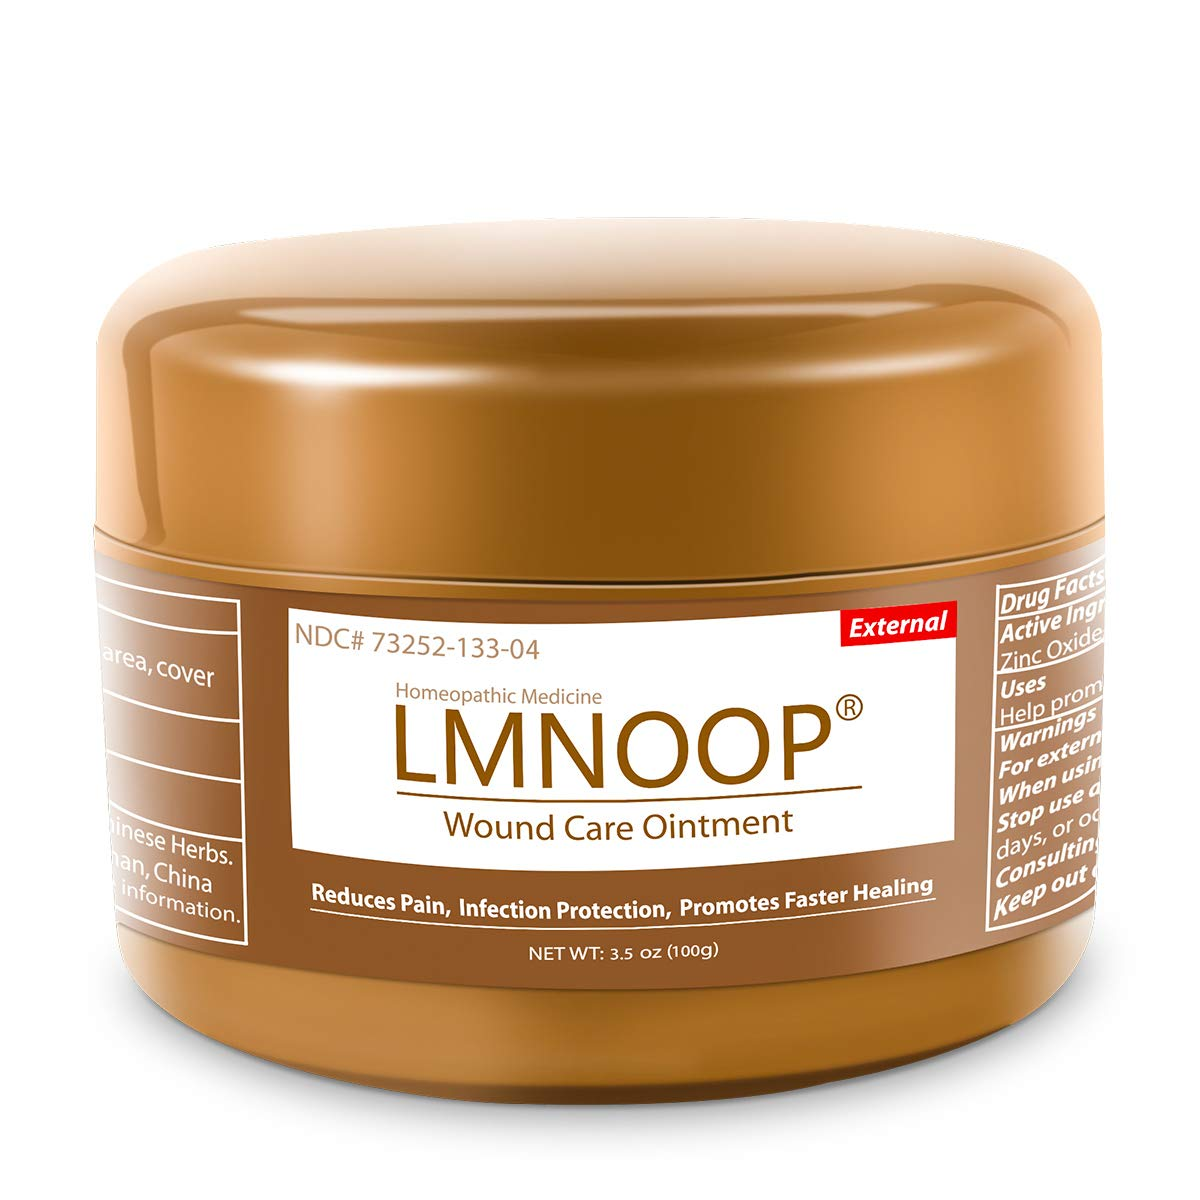 LMNOOP® Wound Care - Bed Sore Cream, Medical Grade Skin Healing Treatment Products, Infection Protection First Aid Ointment for Bed & Pressure Sores Diabetic Venous Foot & Leg Ulcer Burns Cuts